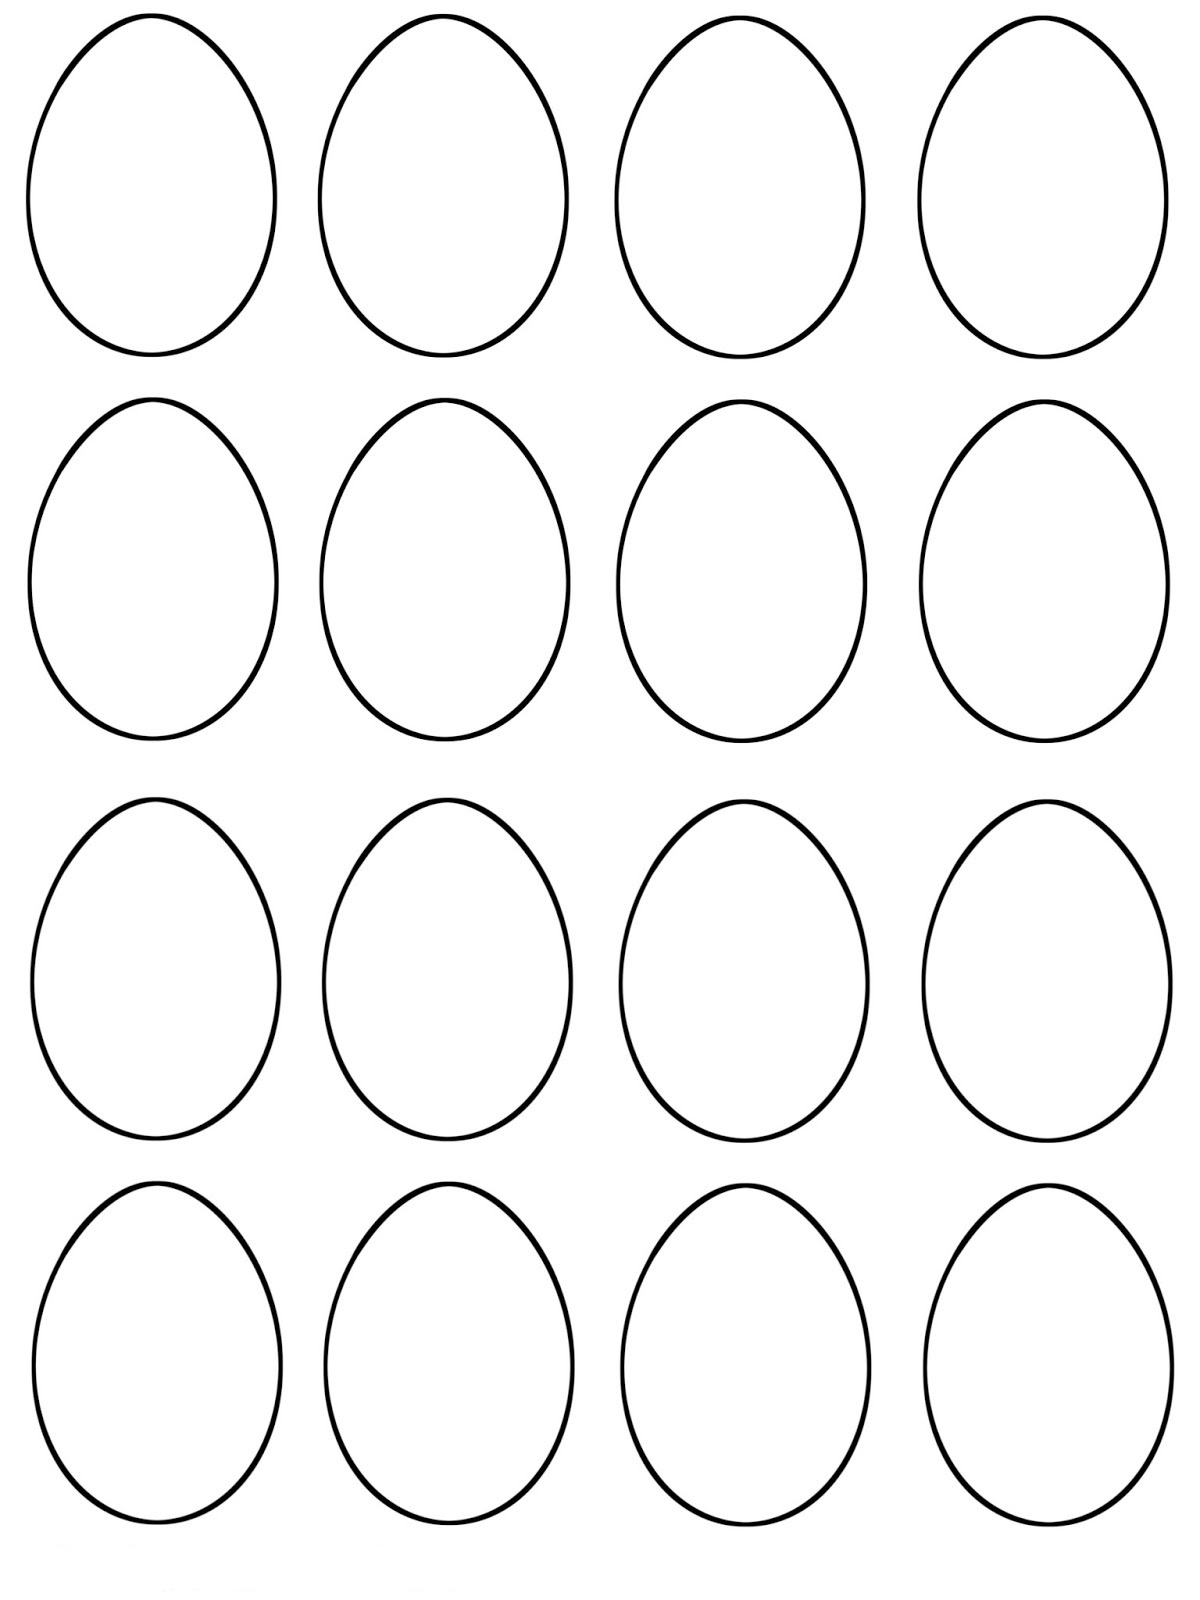 blank-easter-egg-template-printable